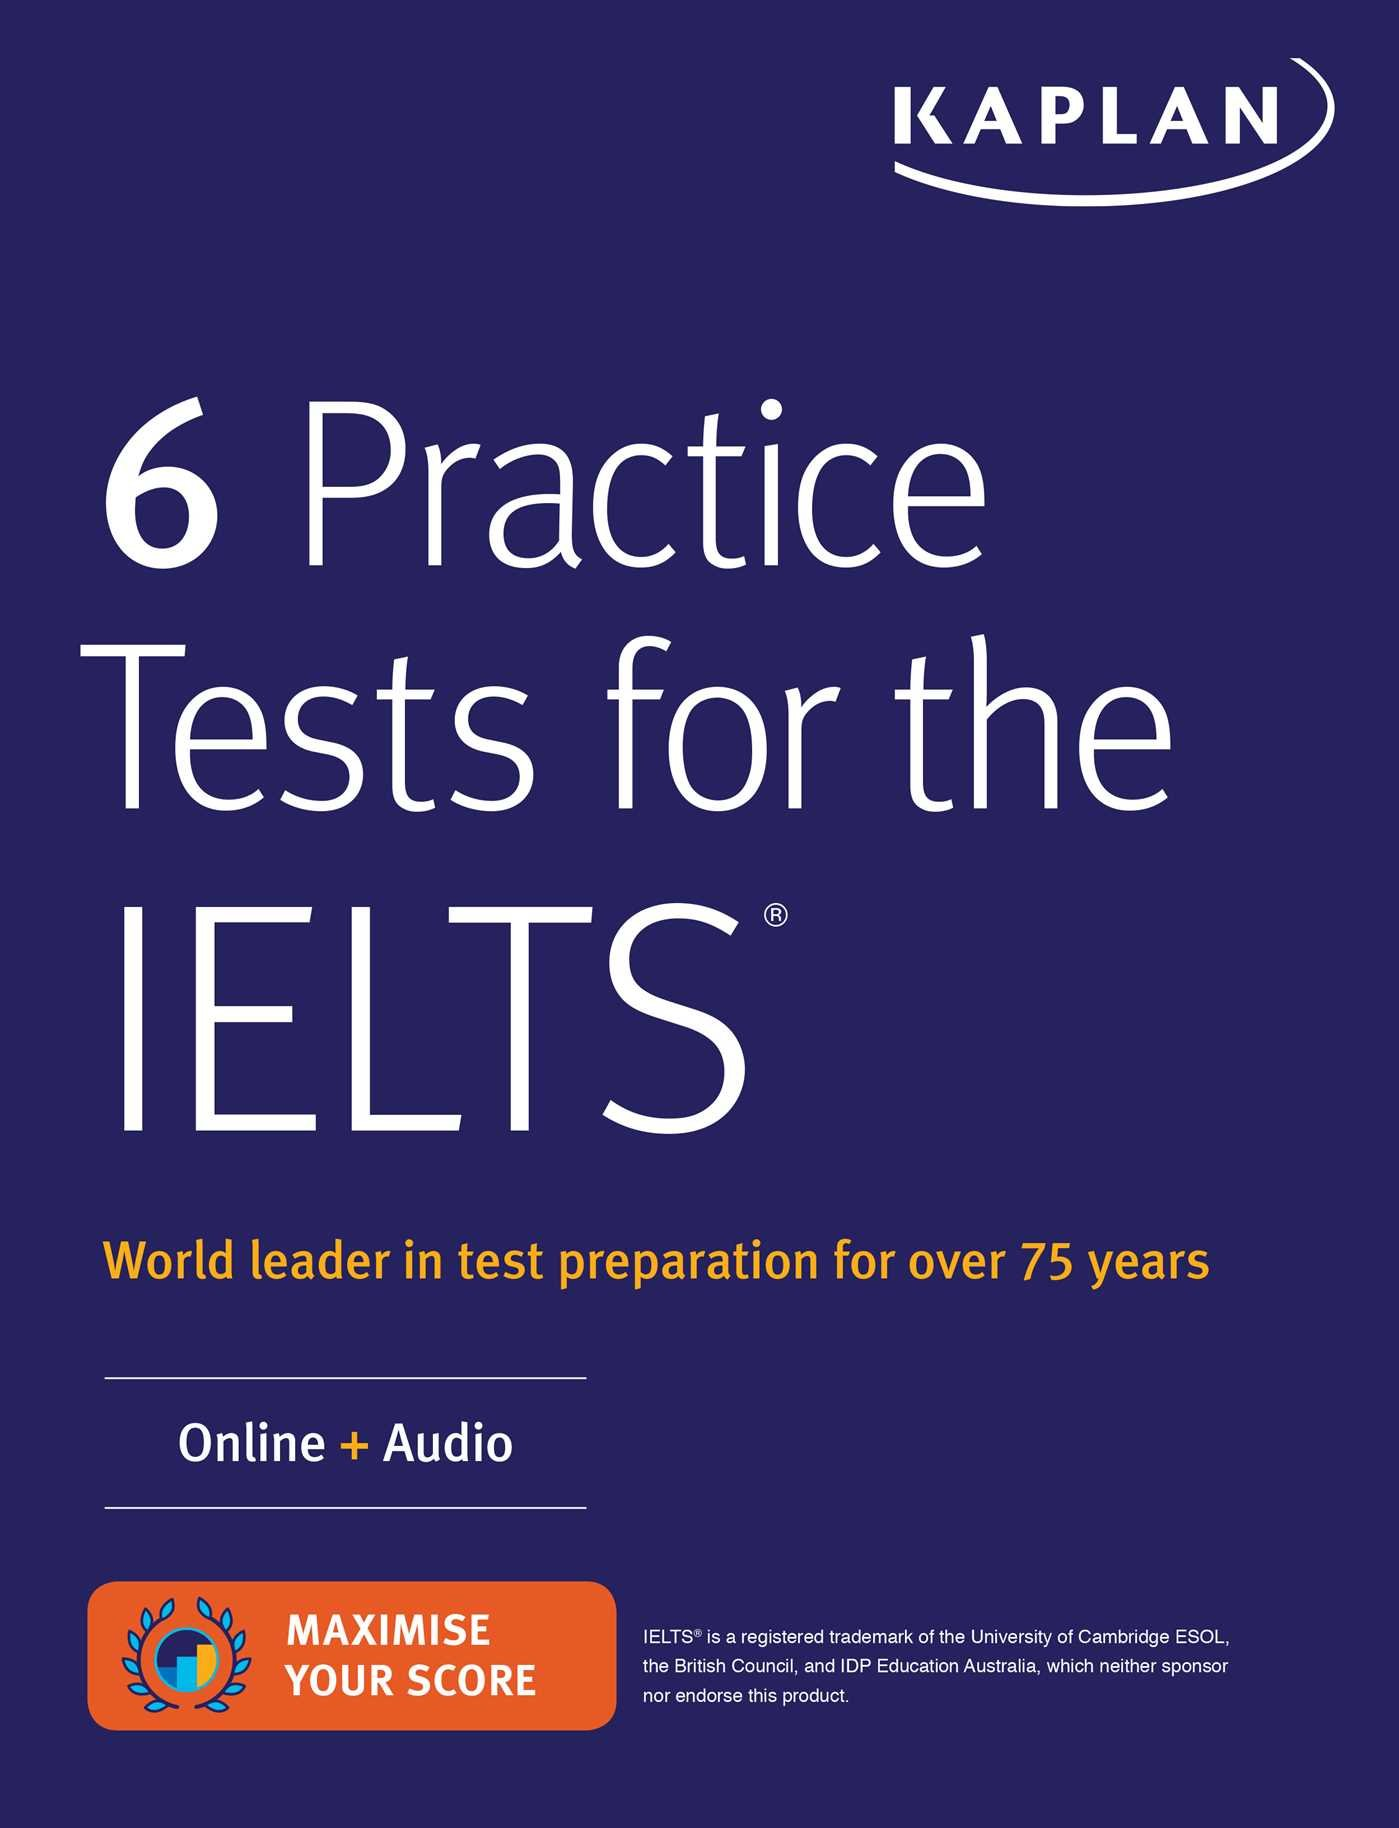 6 Practice Tests for the IELTS Online + Audio